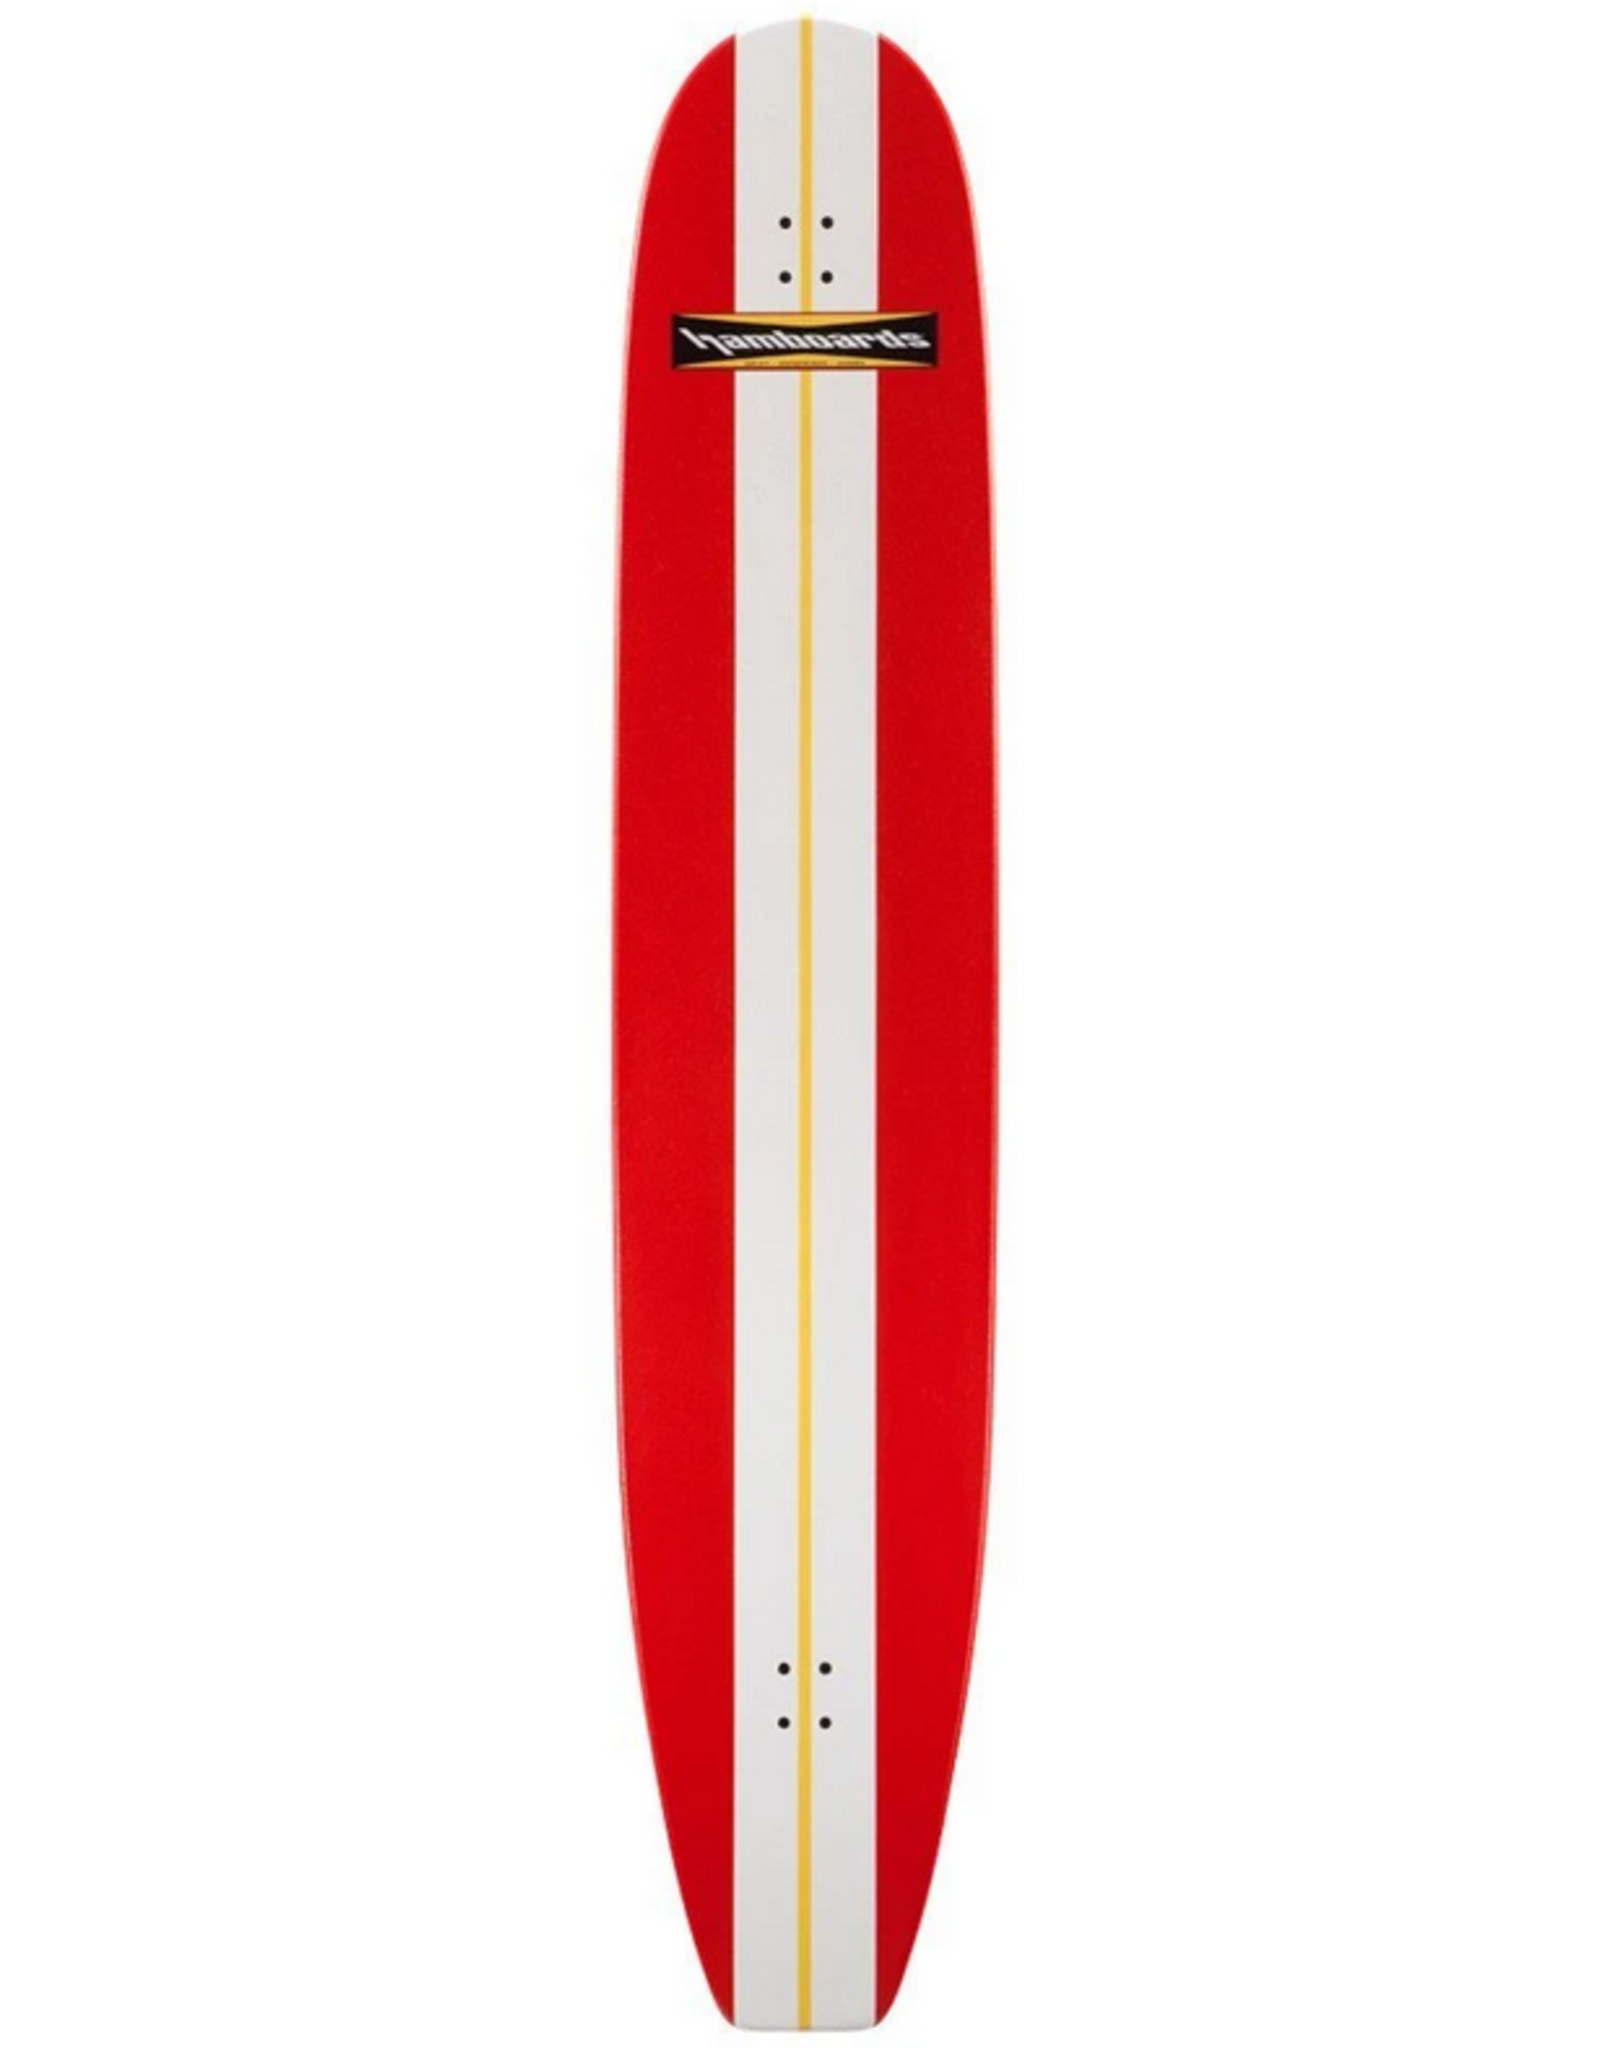 Hamboards Hamboards Classic Surfskate 74 in Painted Birch Red White